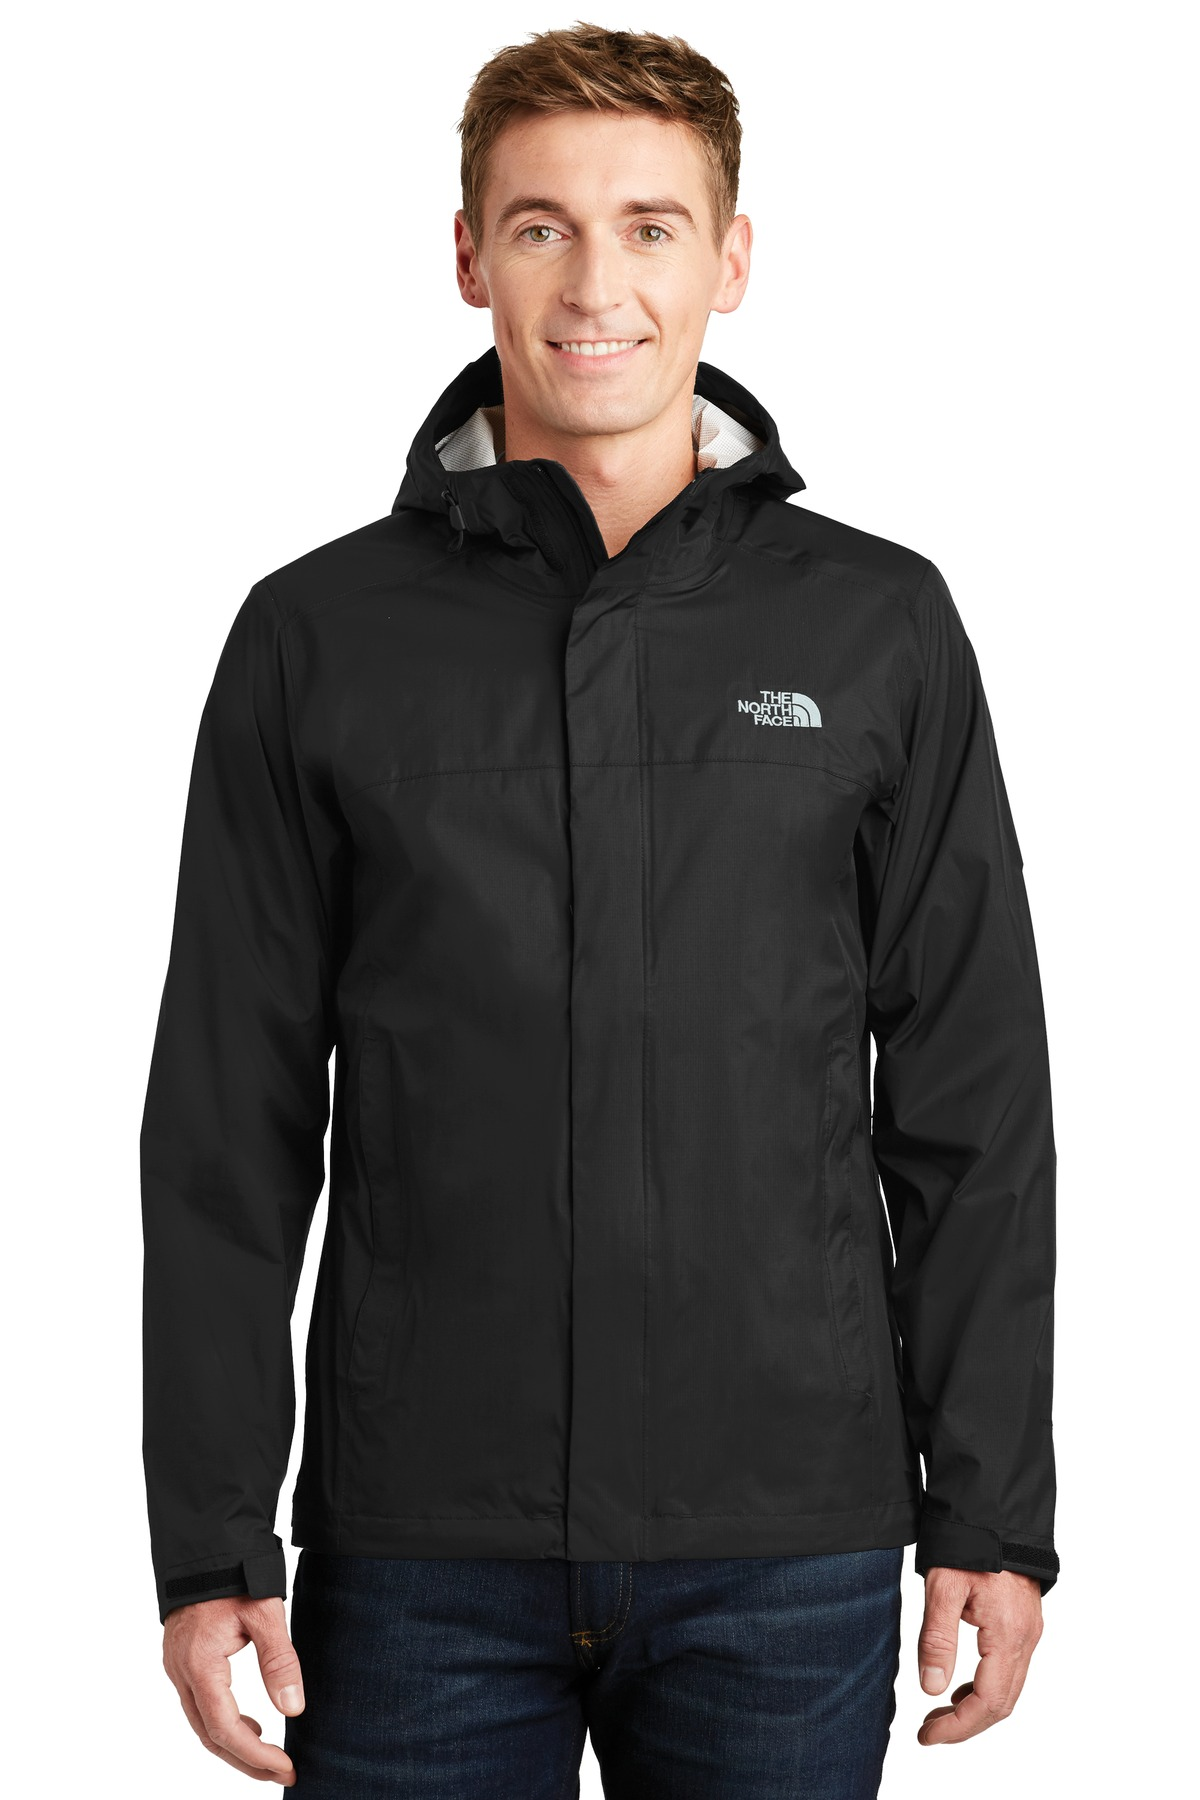 The North Face  ®  DryVent ™  Rain Jacket. NF0A3LH4 - TNF Black